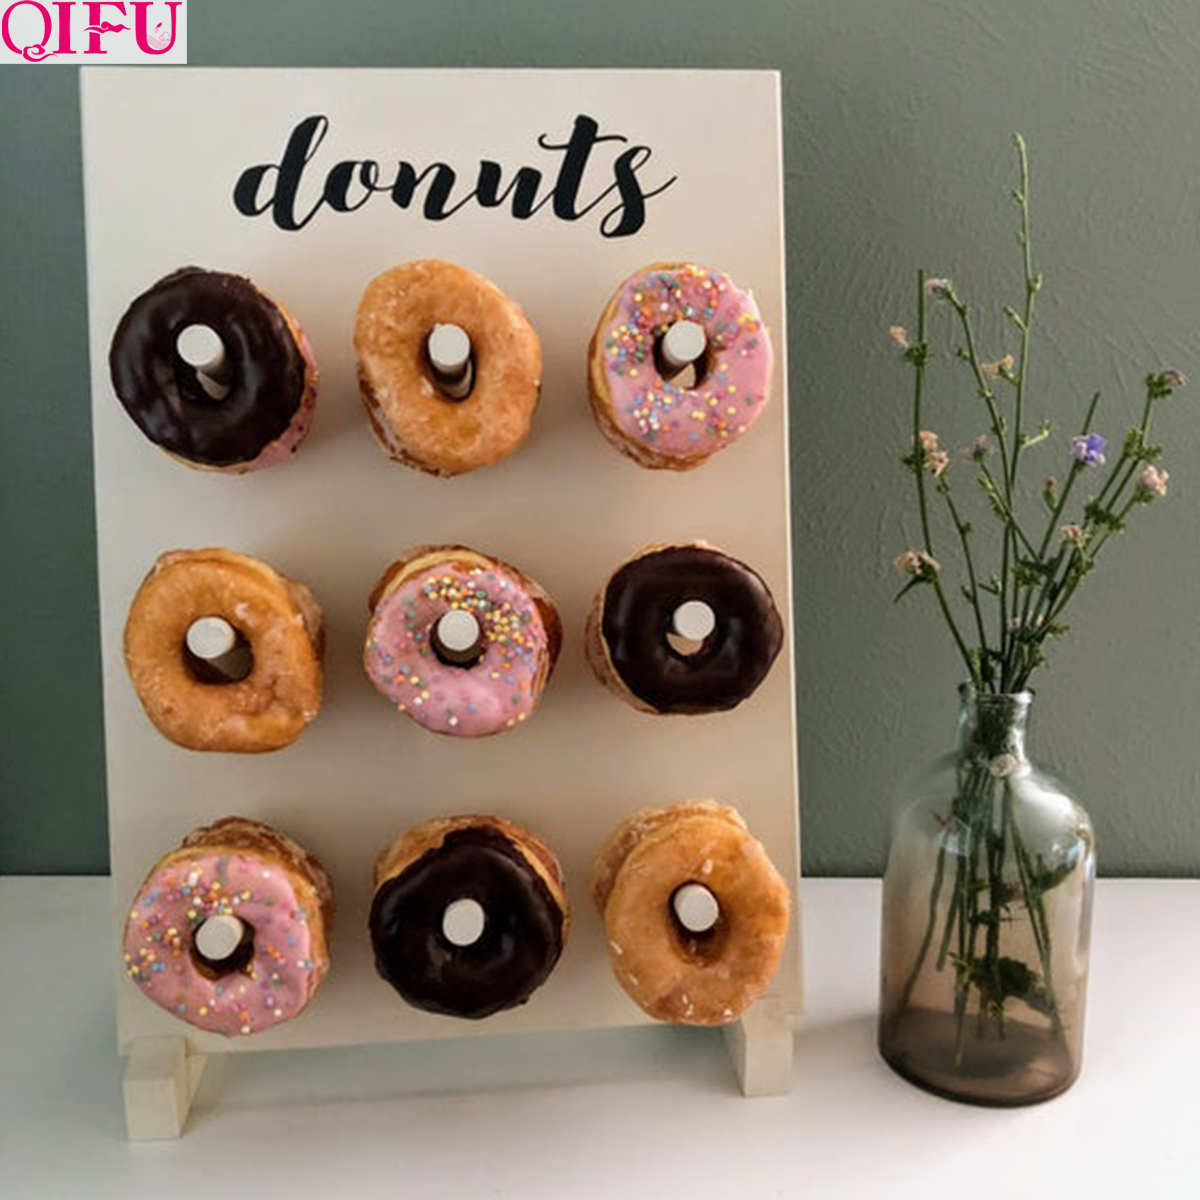 Donut Wall Stand Donut Birthday Decoration Dount Party Doughnut Party Supplies Birthday Decor Table Baby shower Wedding Event